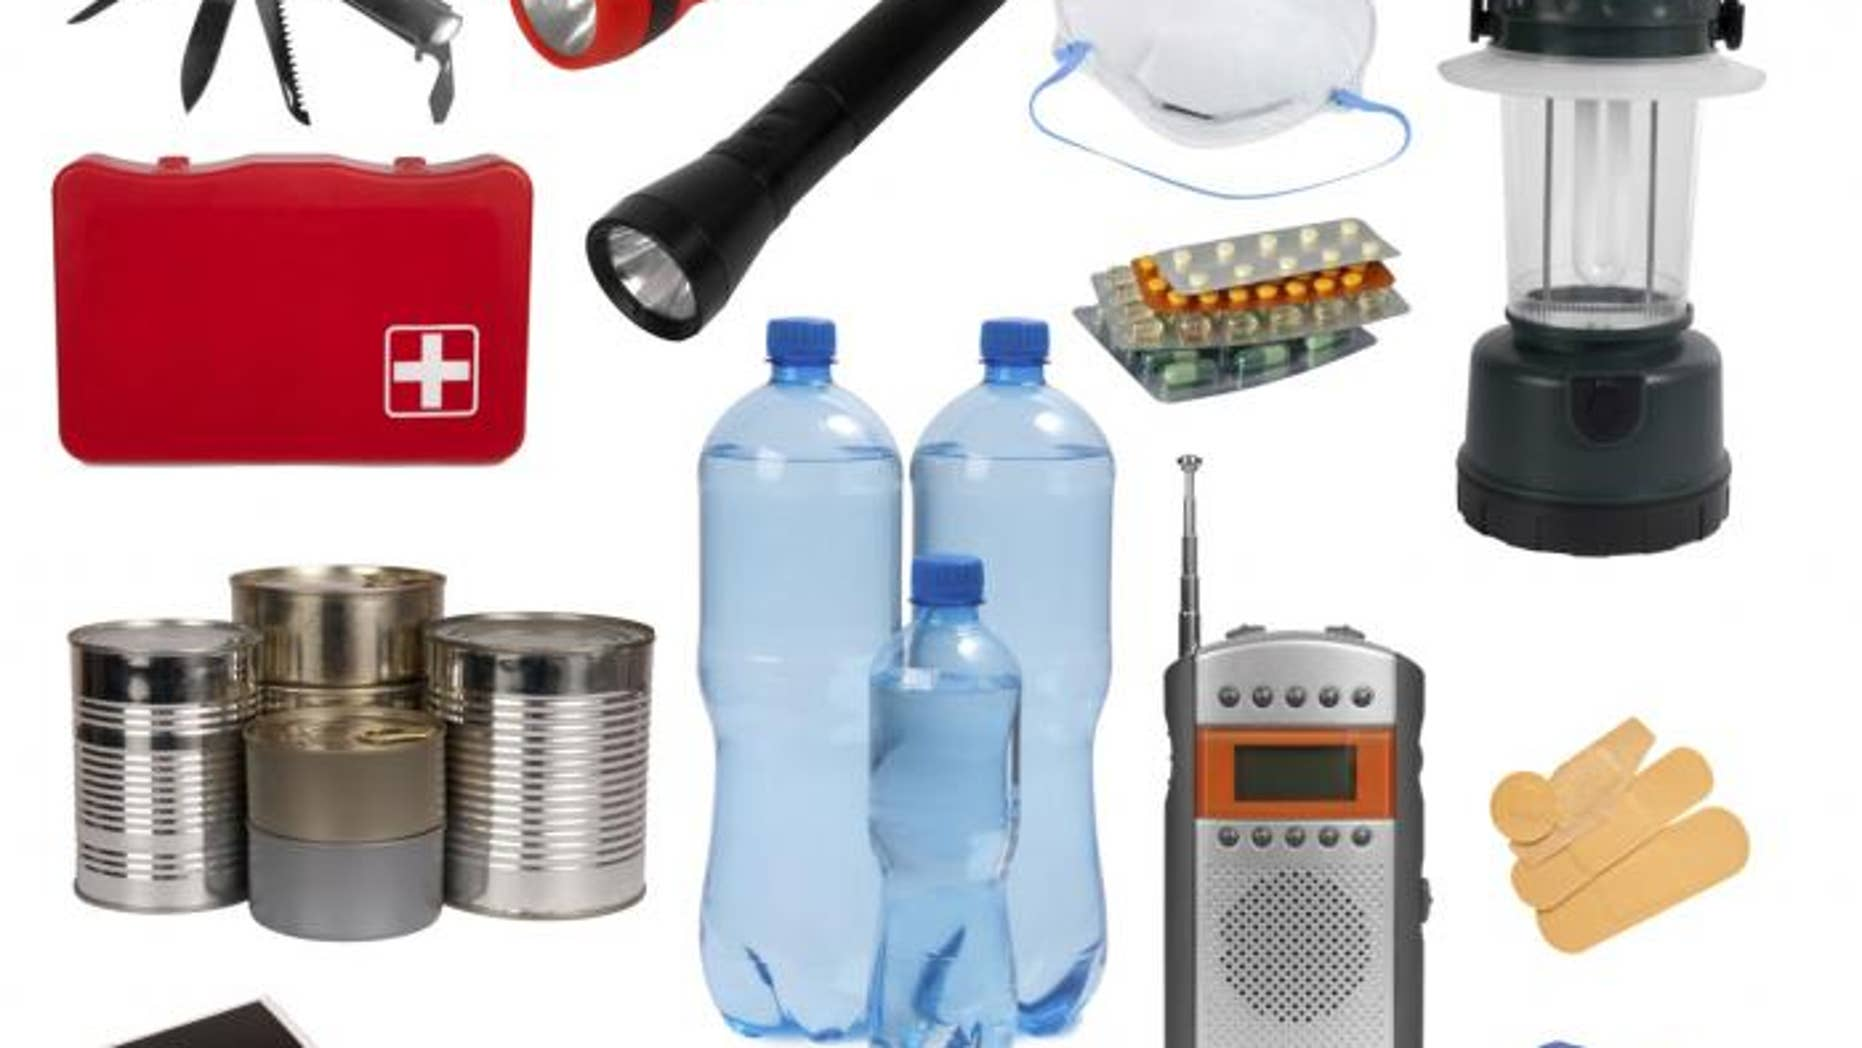 256e4d0e1924 The 10 Things You Need to Have in Your Disaster Emergency Kit